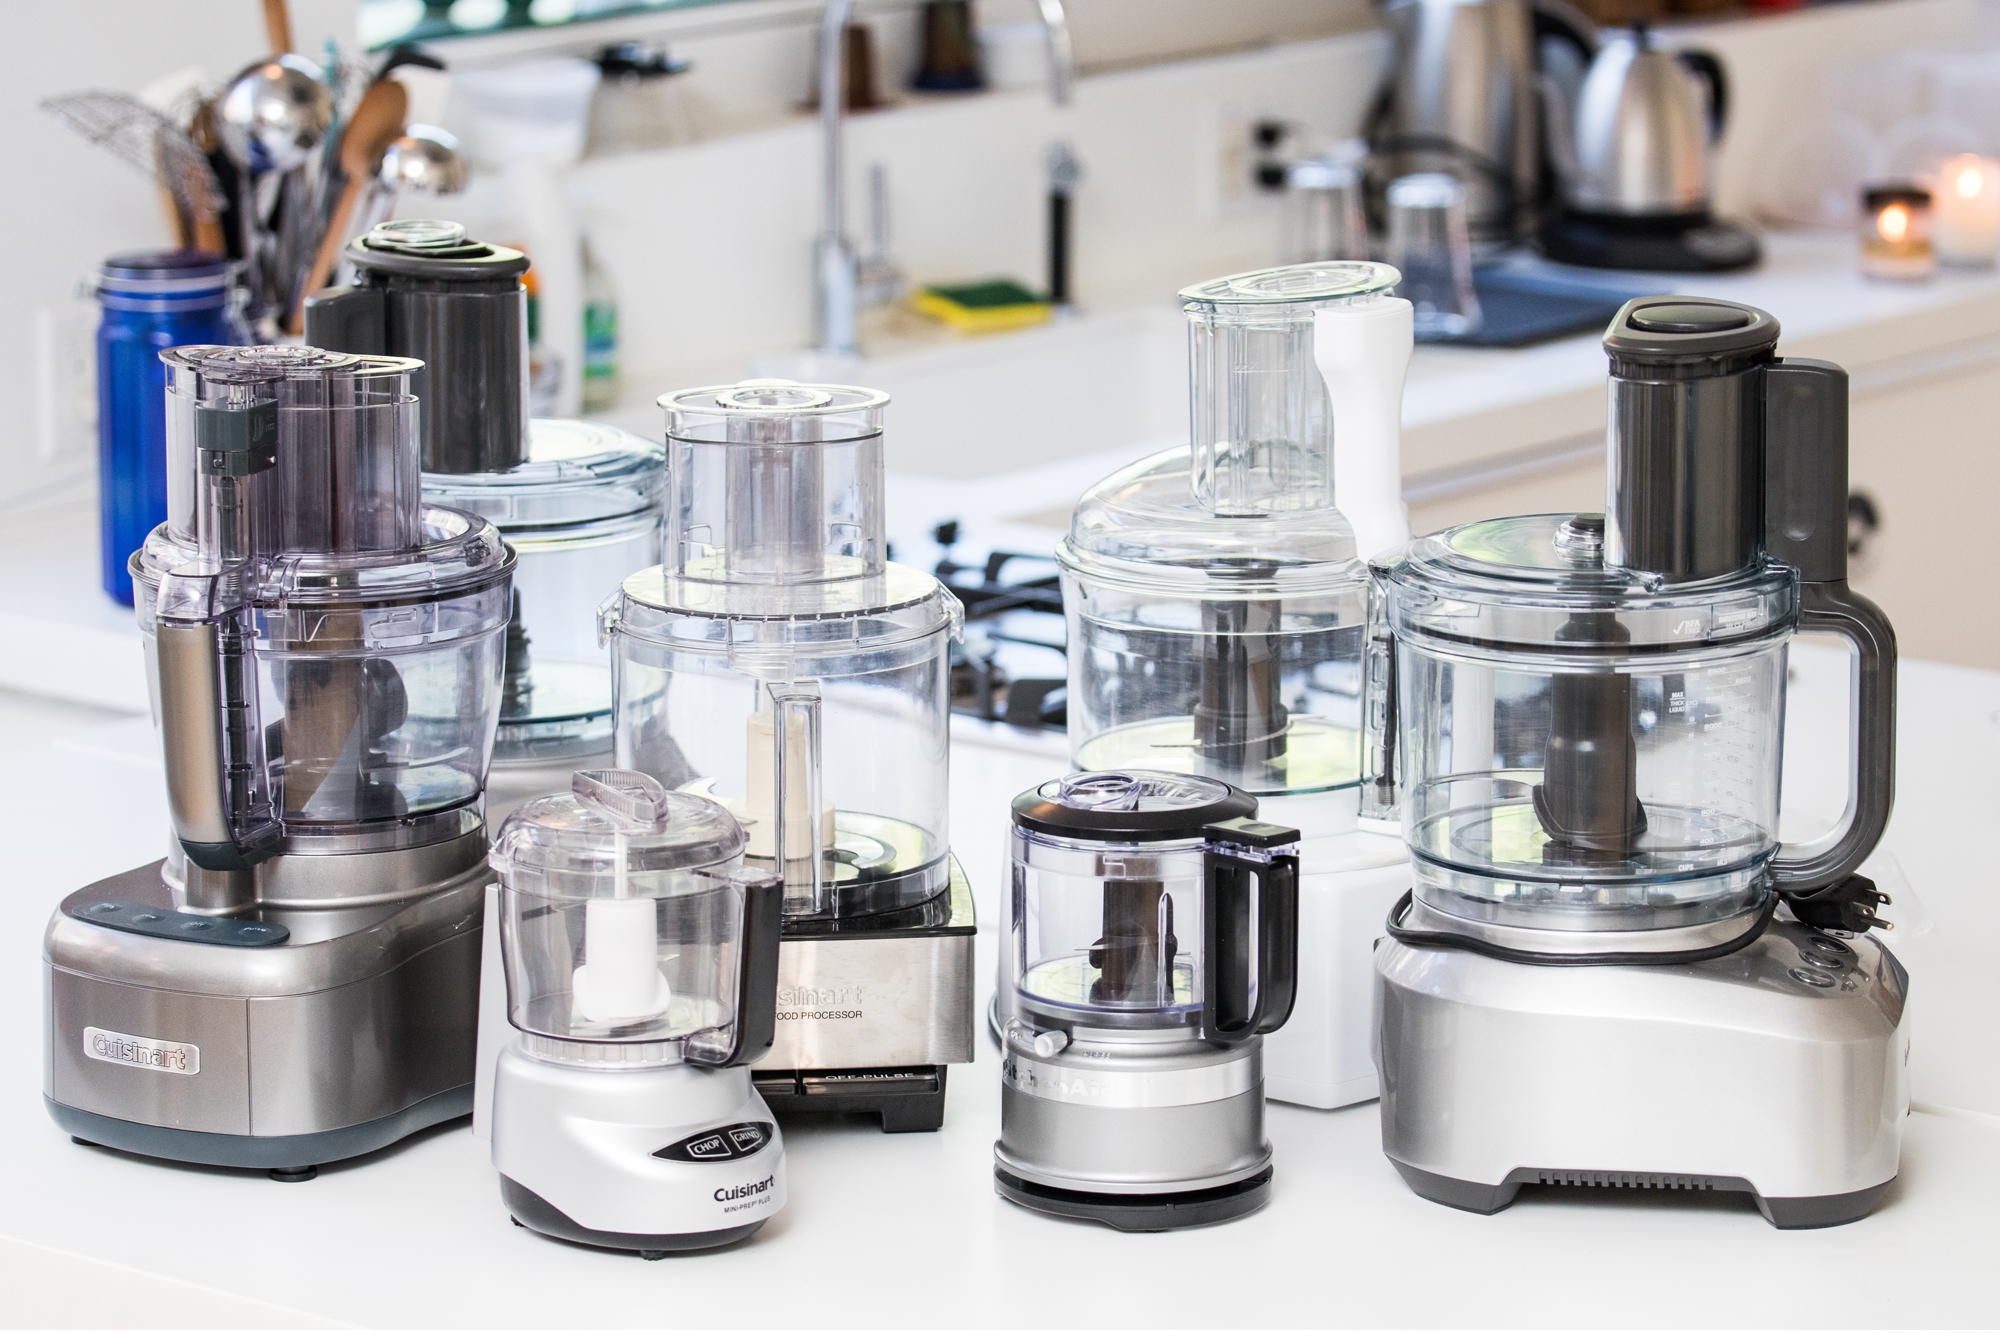 Different type of food processor